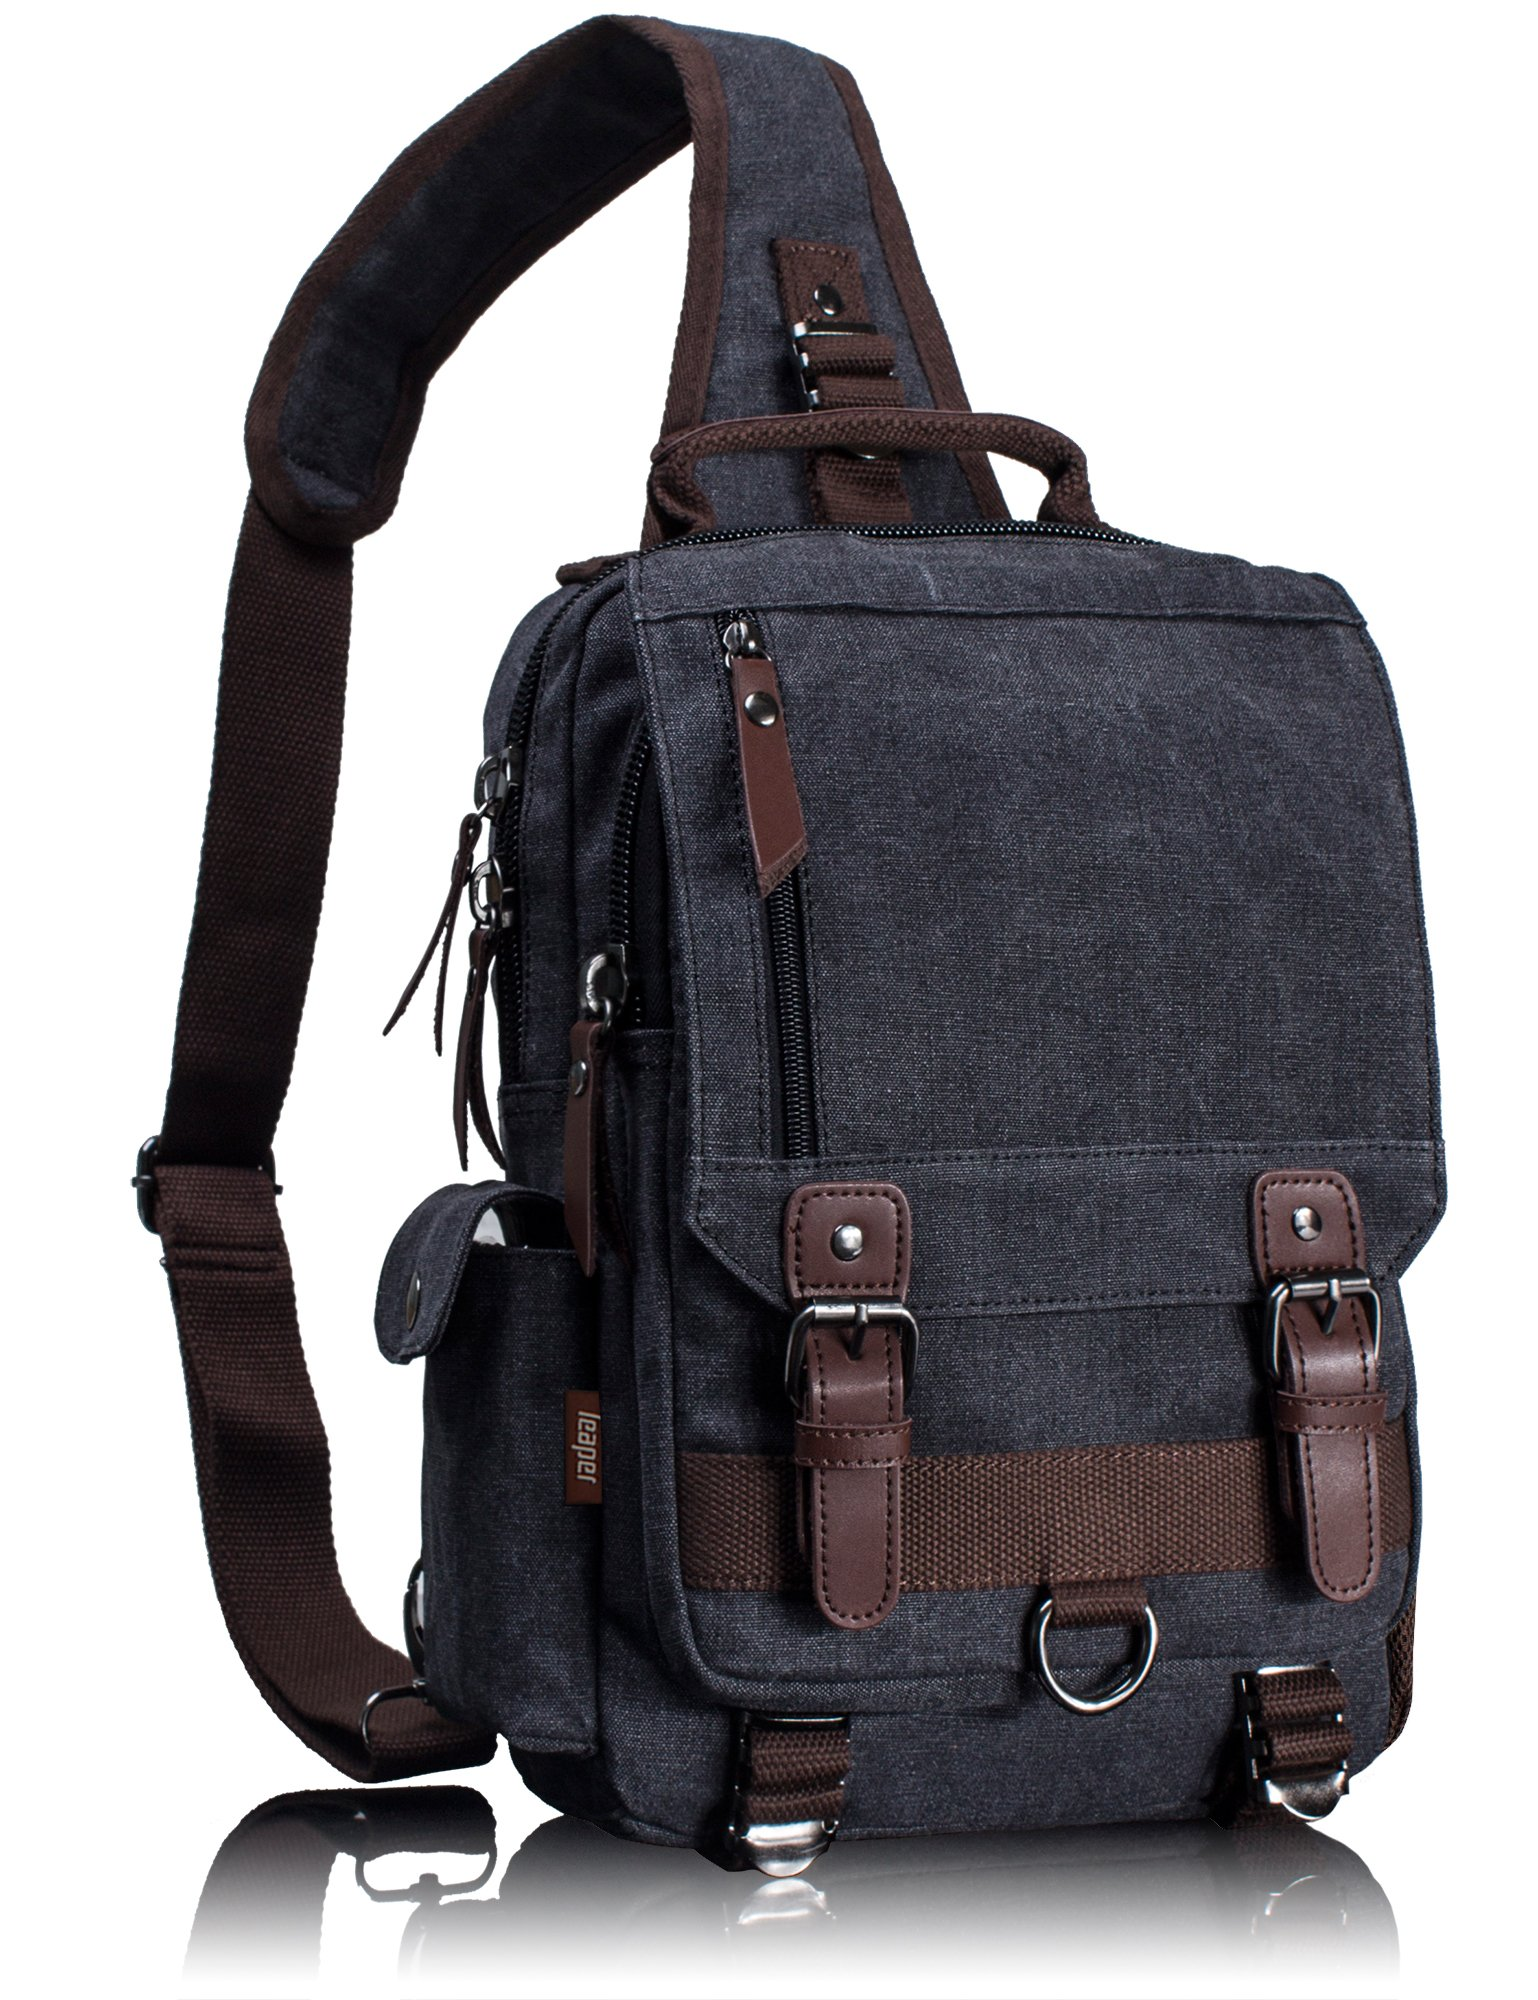 Leaper Retro Messenger Bag Canvas Shoulder Backpack Travel Rucksack Sling  Bag product image f07510018e5